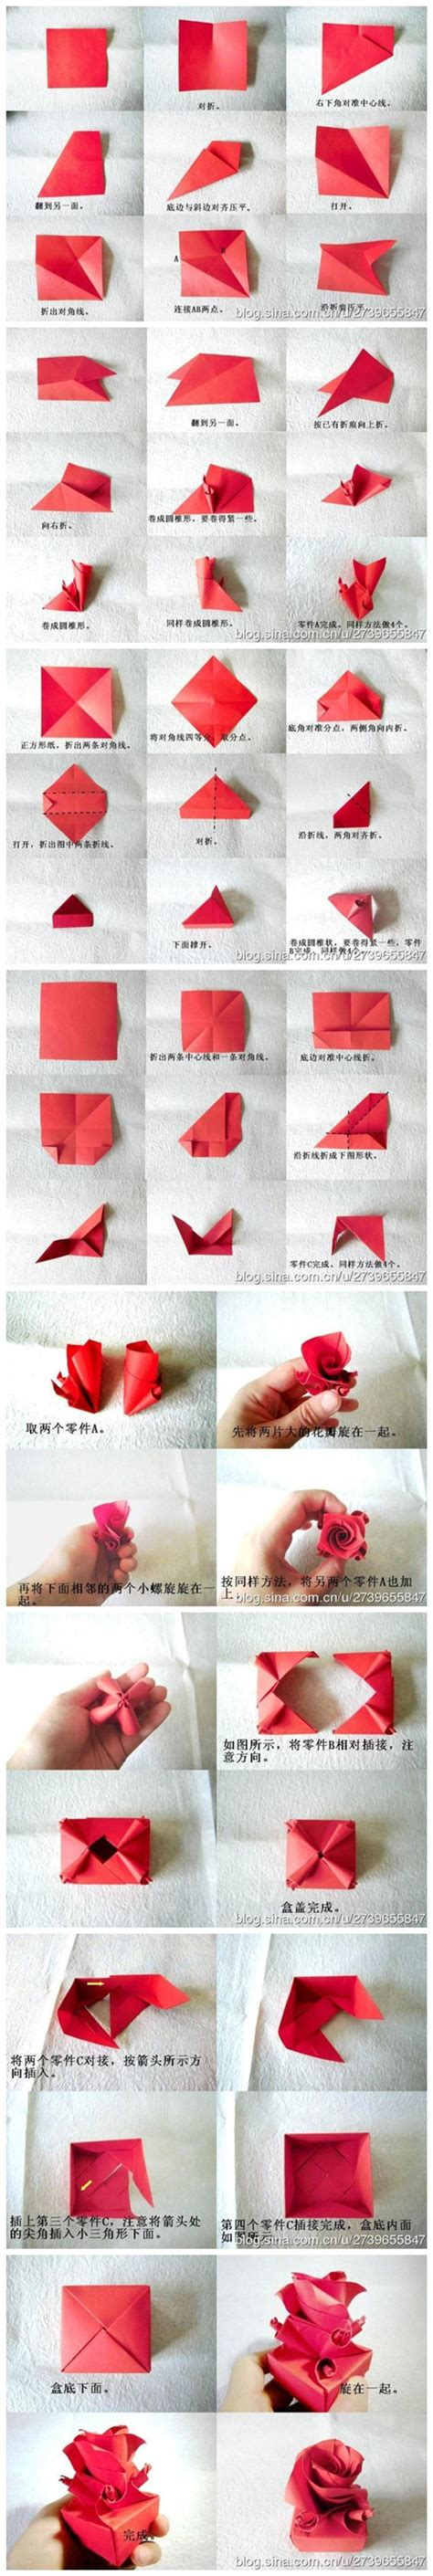 How To Make Paper Roses Step By Step - the gallery for gt how to fold origami step by step